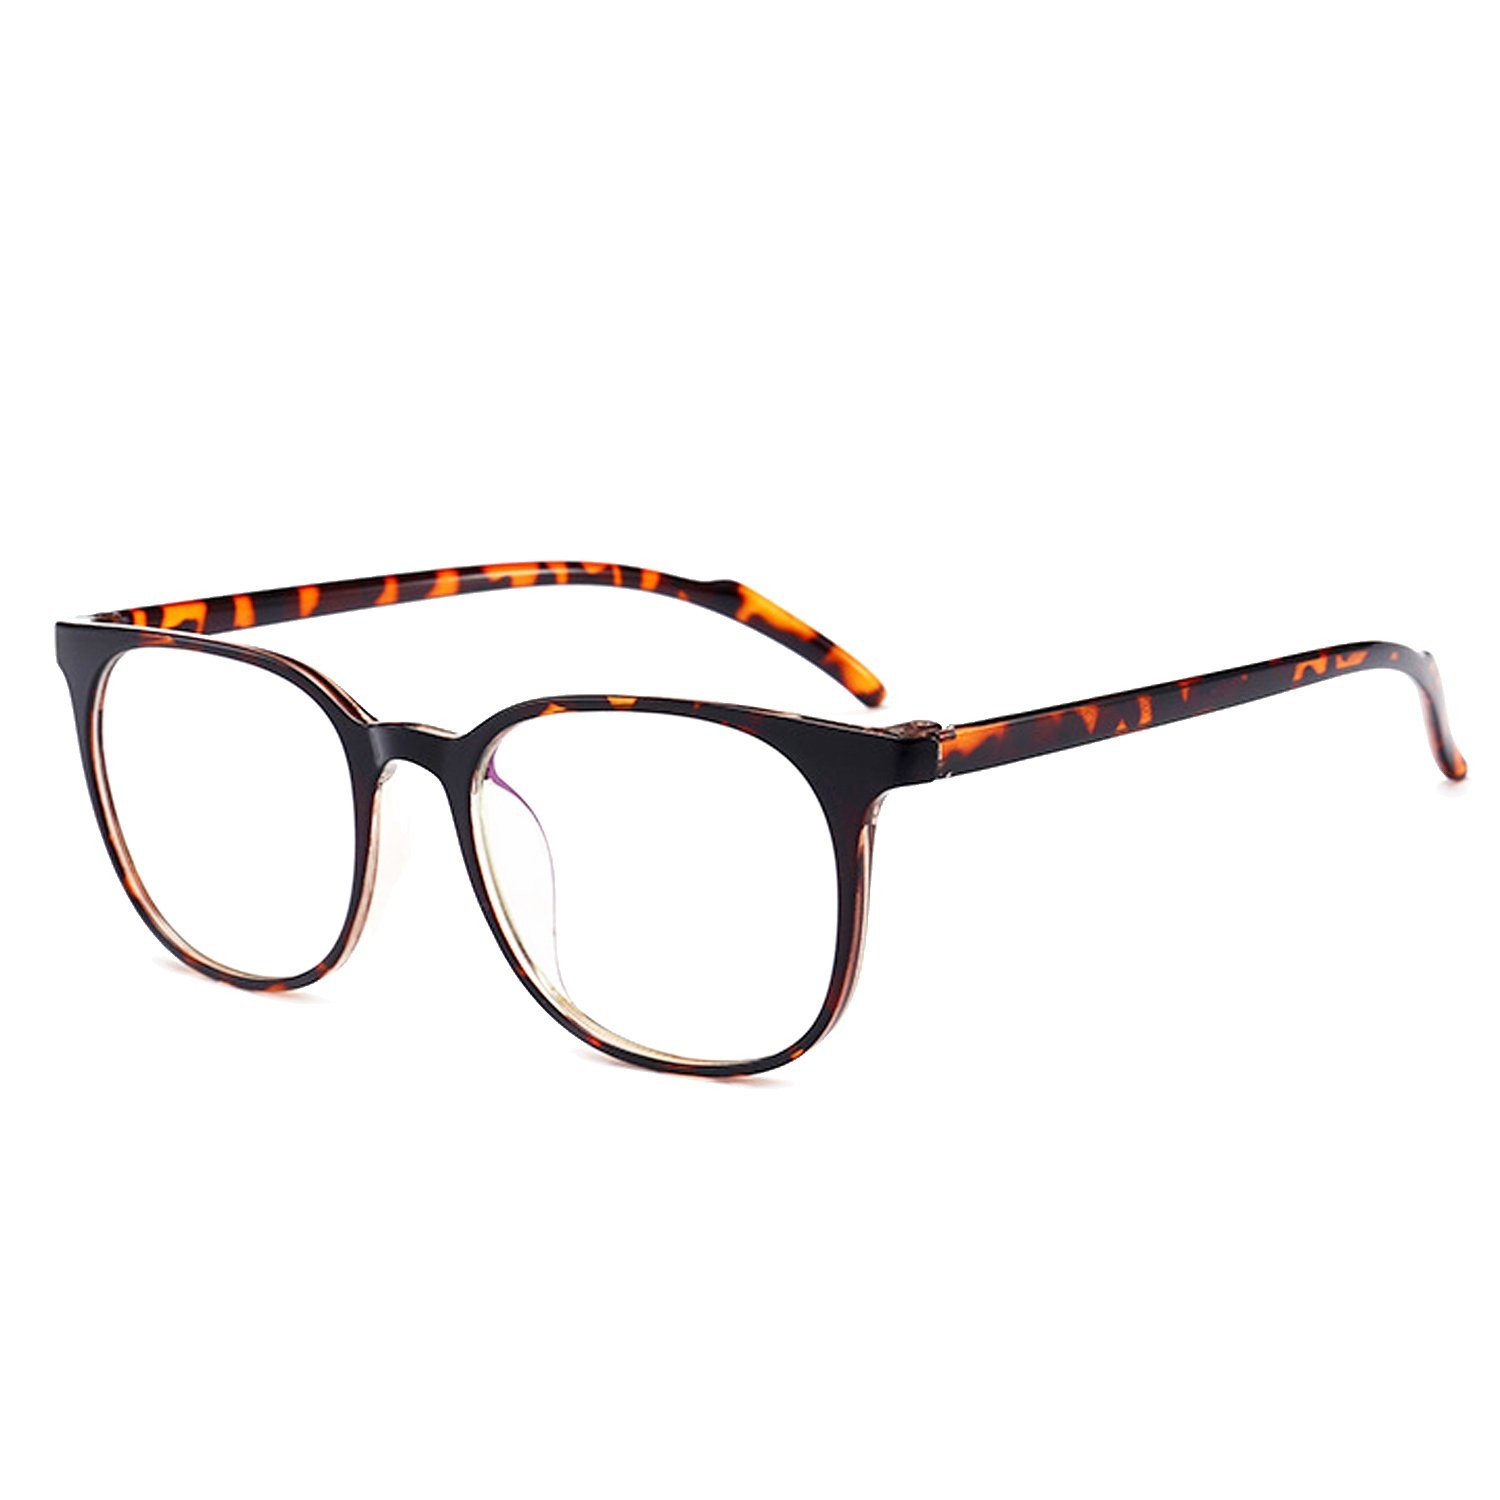 93630e94bb ANRRI Blue Light Blocking Computer Glasses for Anti Eyestrain Anti Glare  Lens Lightweight Frame Eyeglasses Leopard